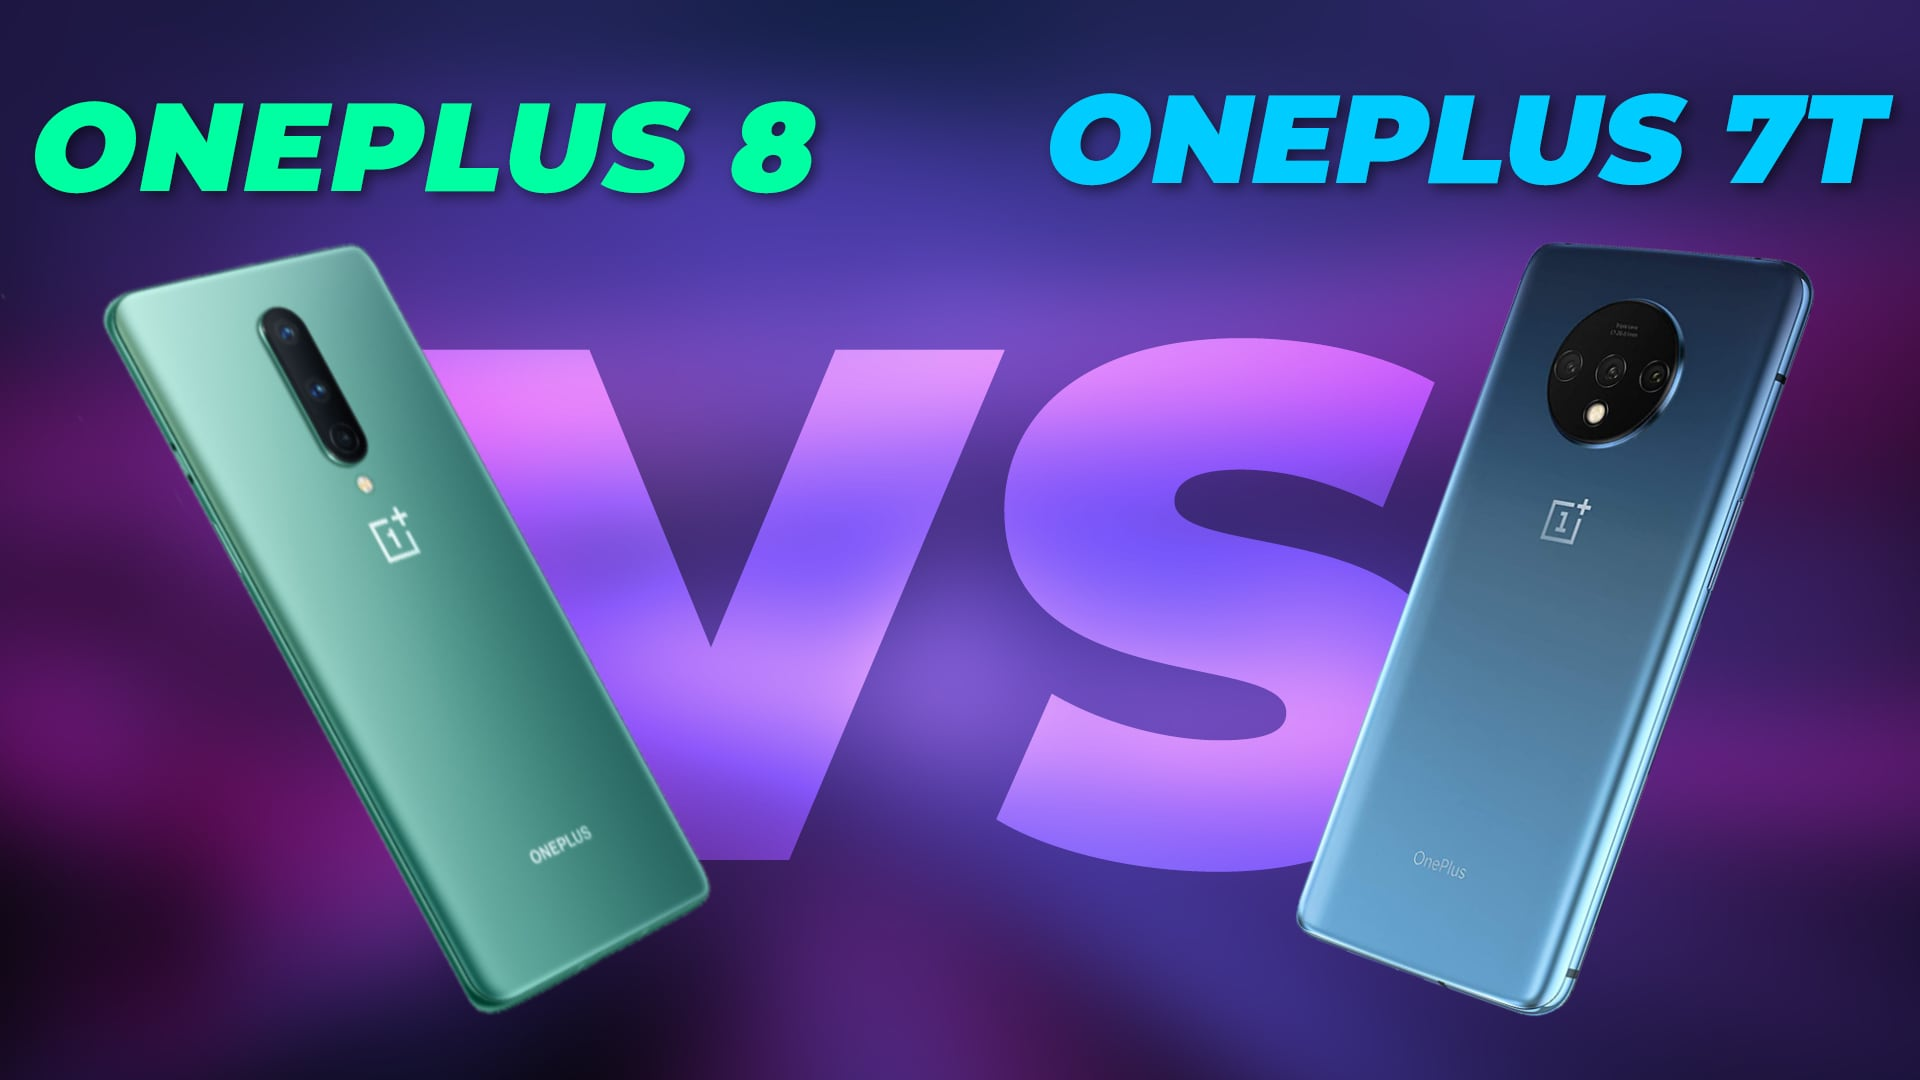 OnePlus 8 vs OnePlus 7T: Is OnePlus 8 Worth Rs. 7,000 More Than OnePlus 7T?